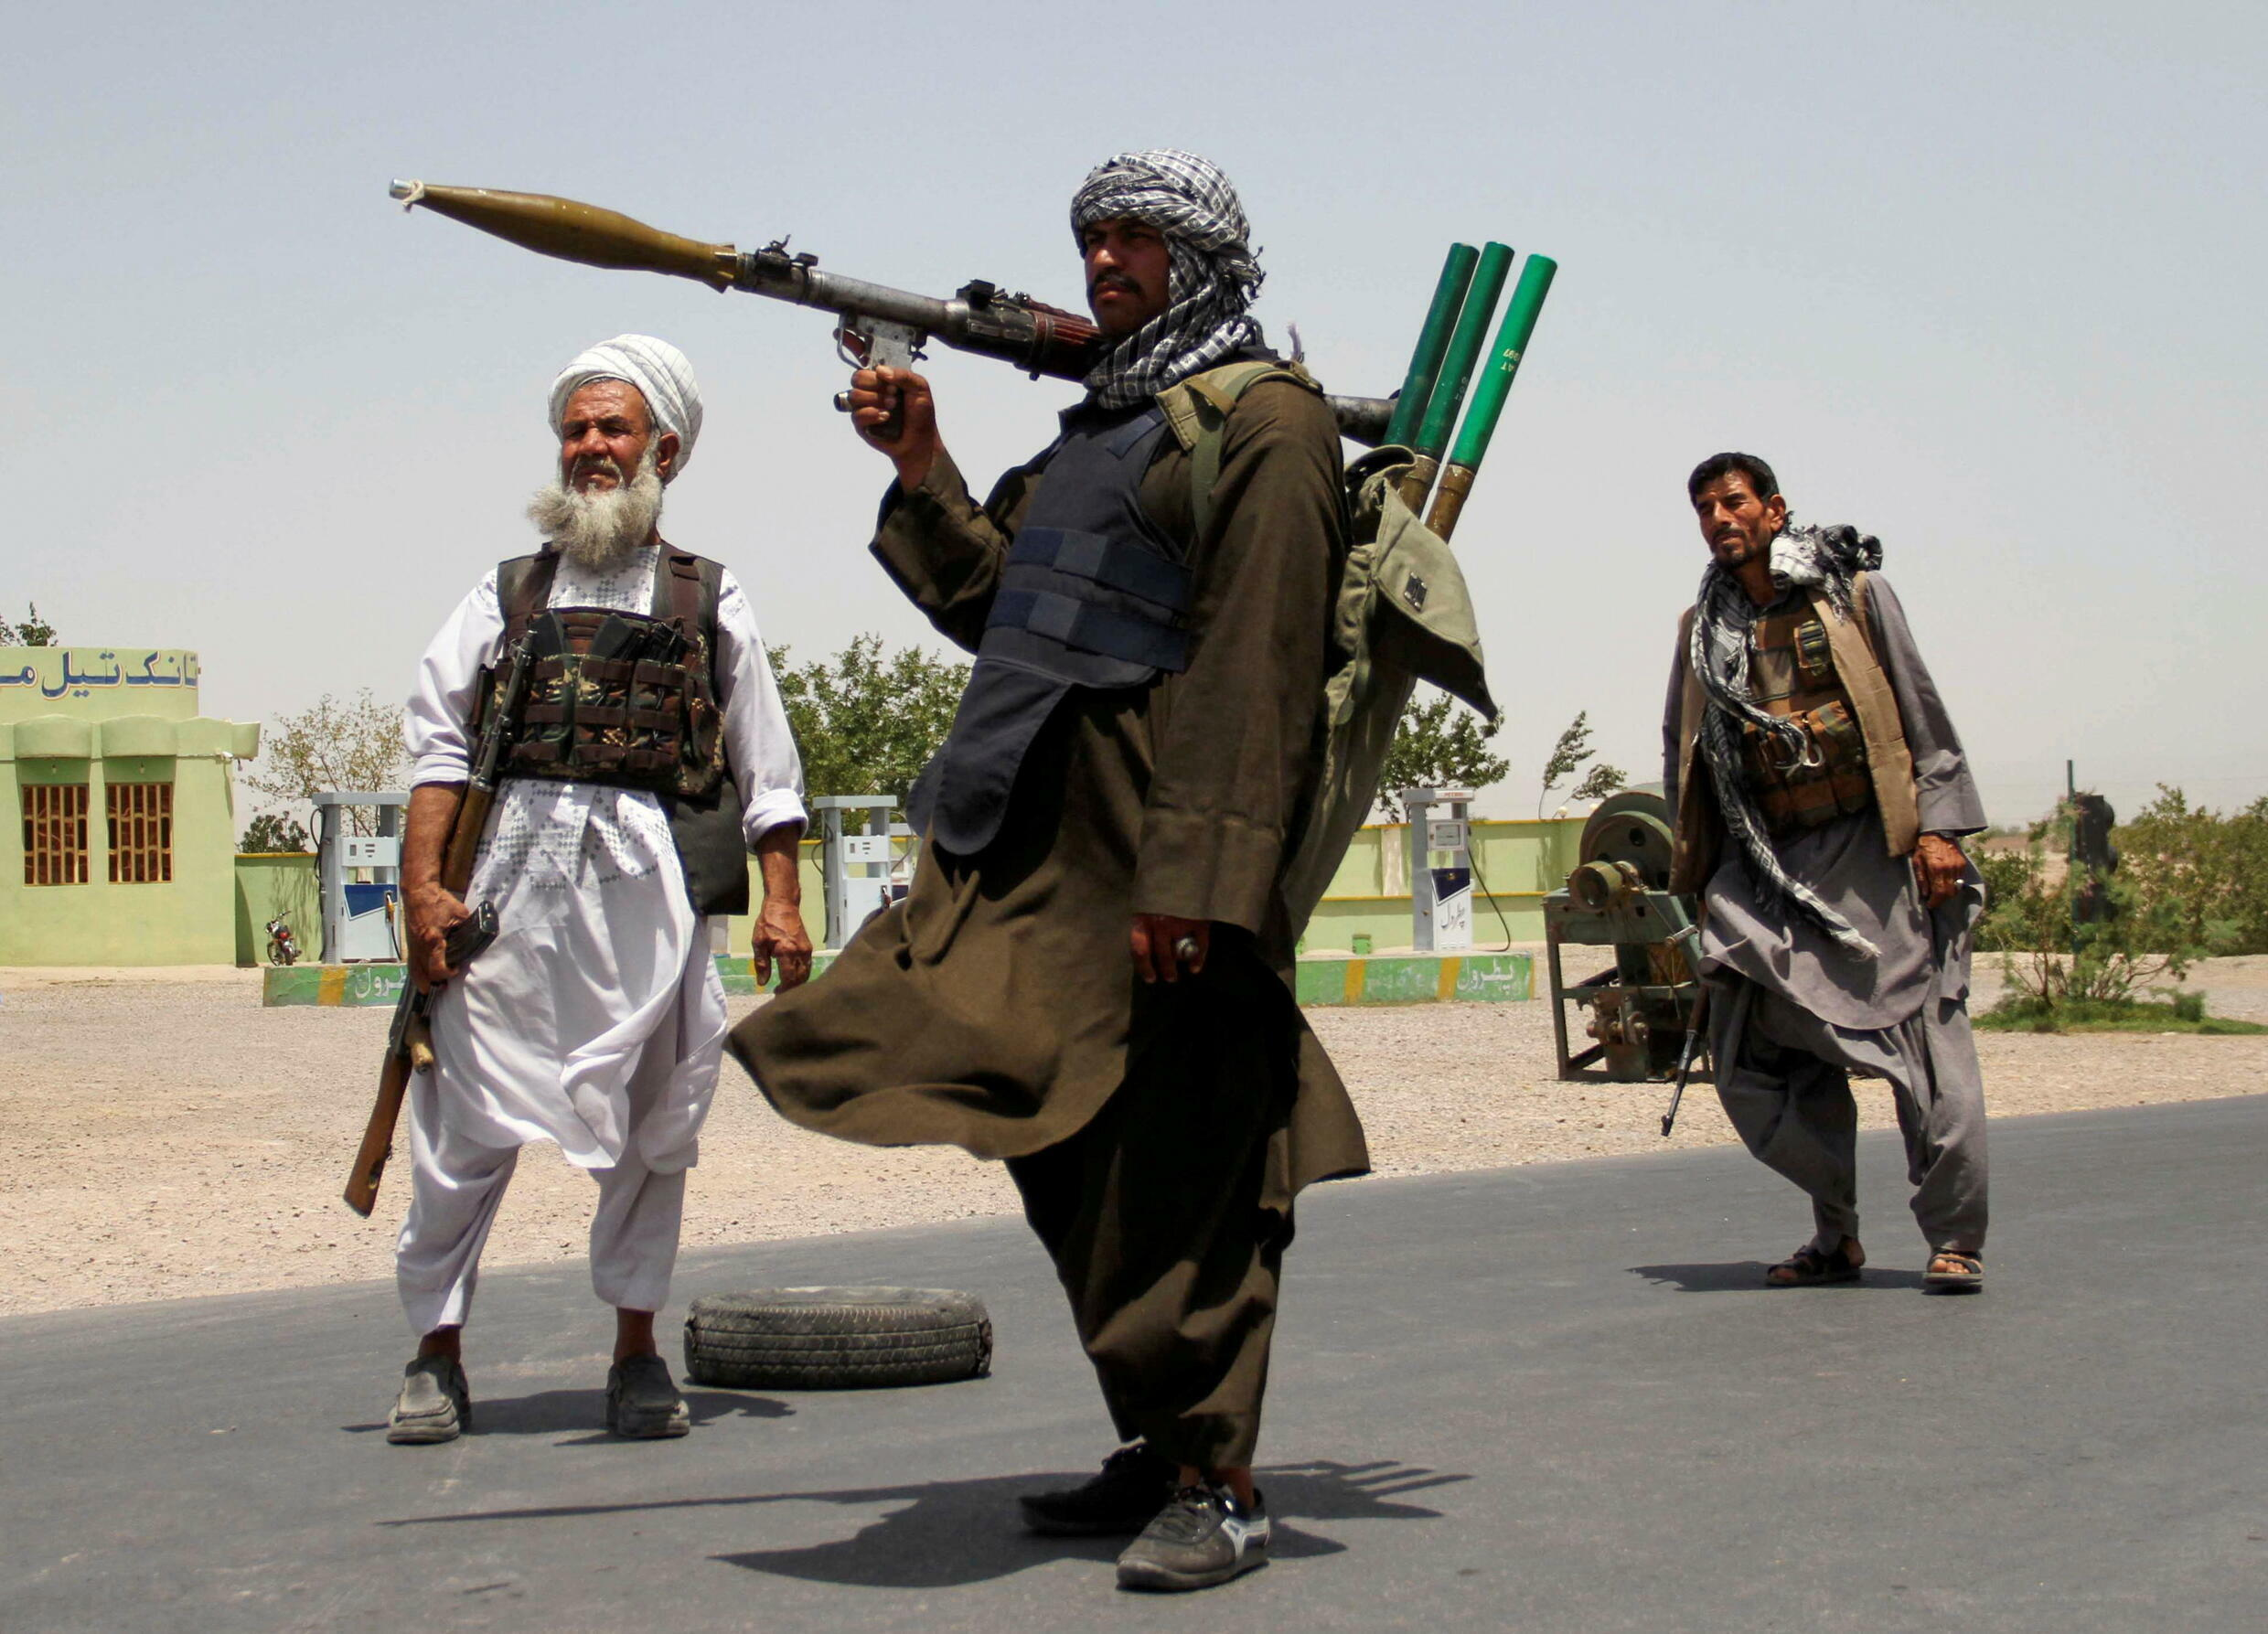 2021-07-30T145618Z_1531406831_RC22VO9O4L91_RTRMADP_3_AFGHANISTAN-CONFLICT